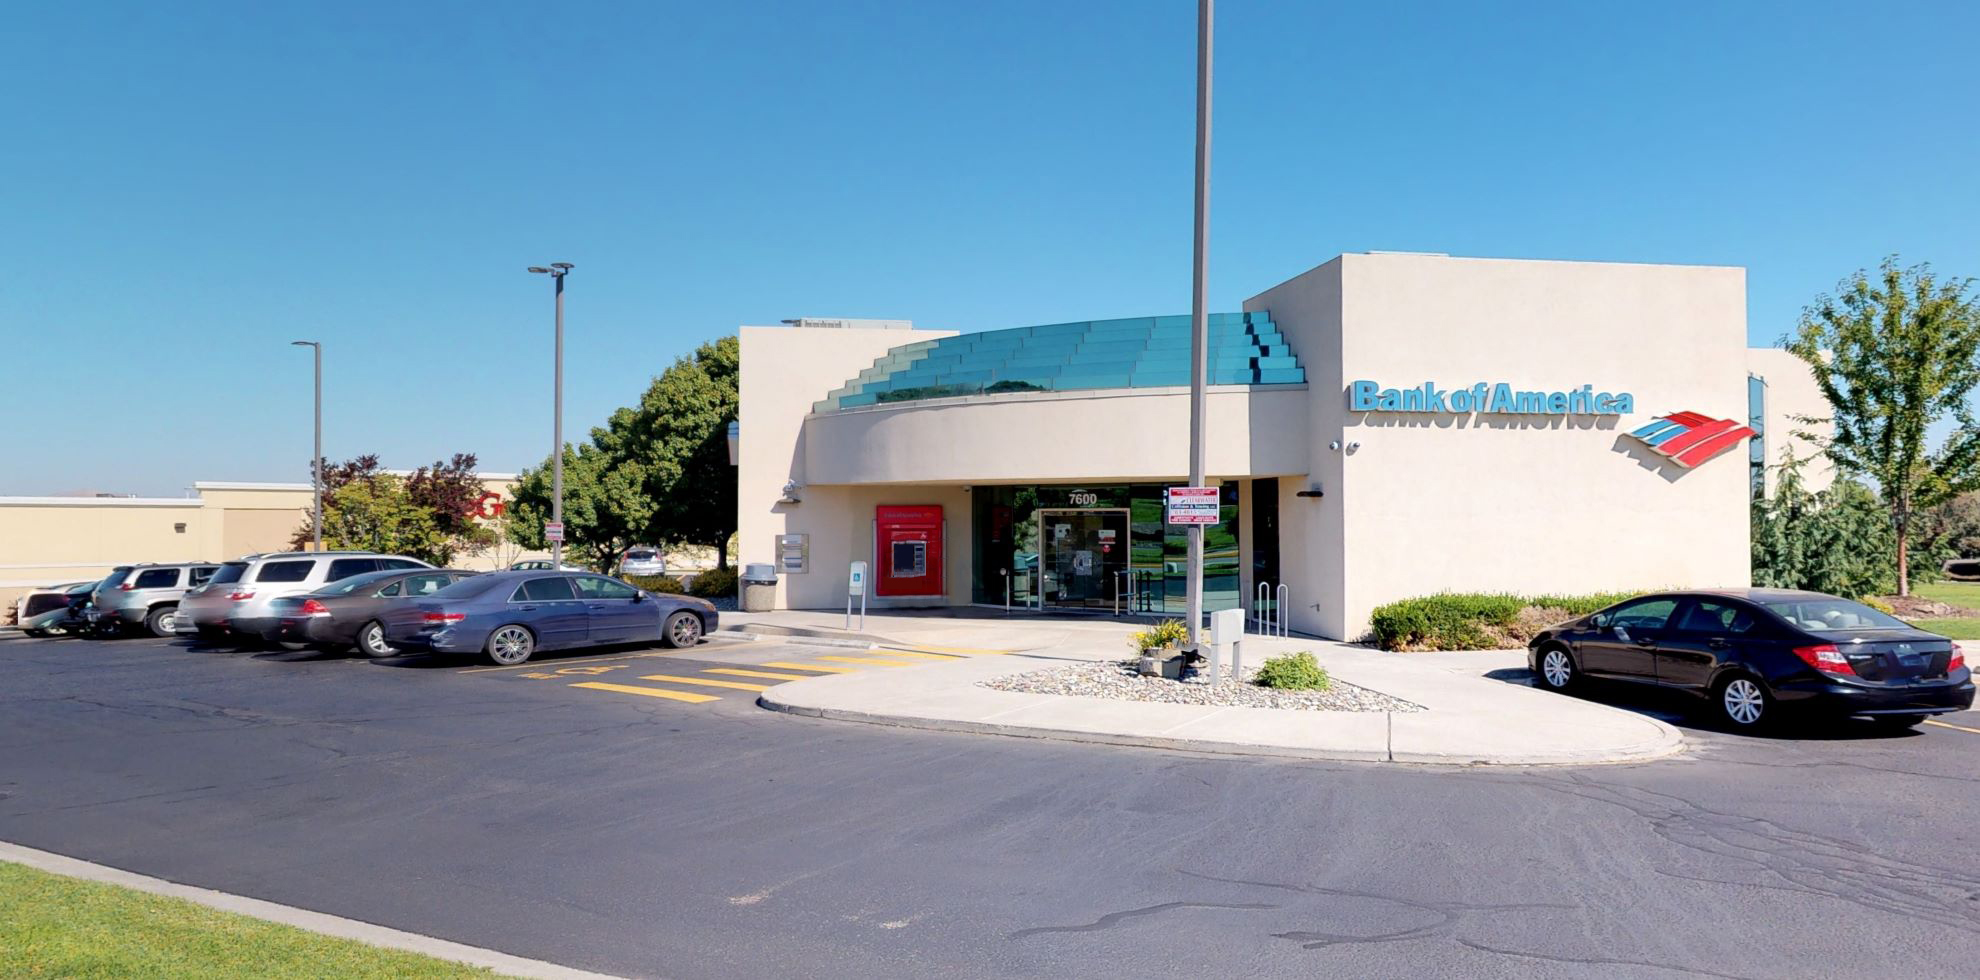 Bank of America financial center with drive-thru ATM and teller | 7600 W Quinault Ave, Kennewick, WA 99336